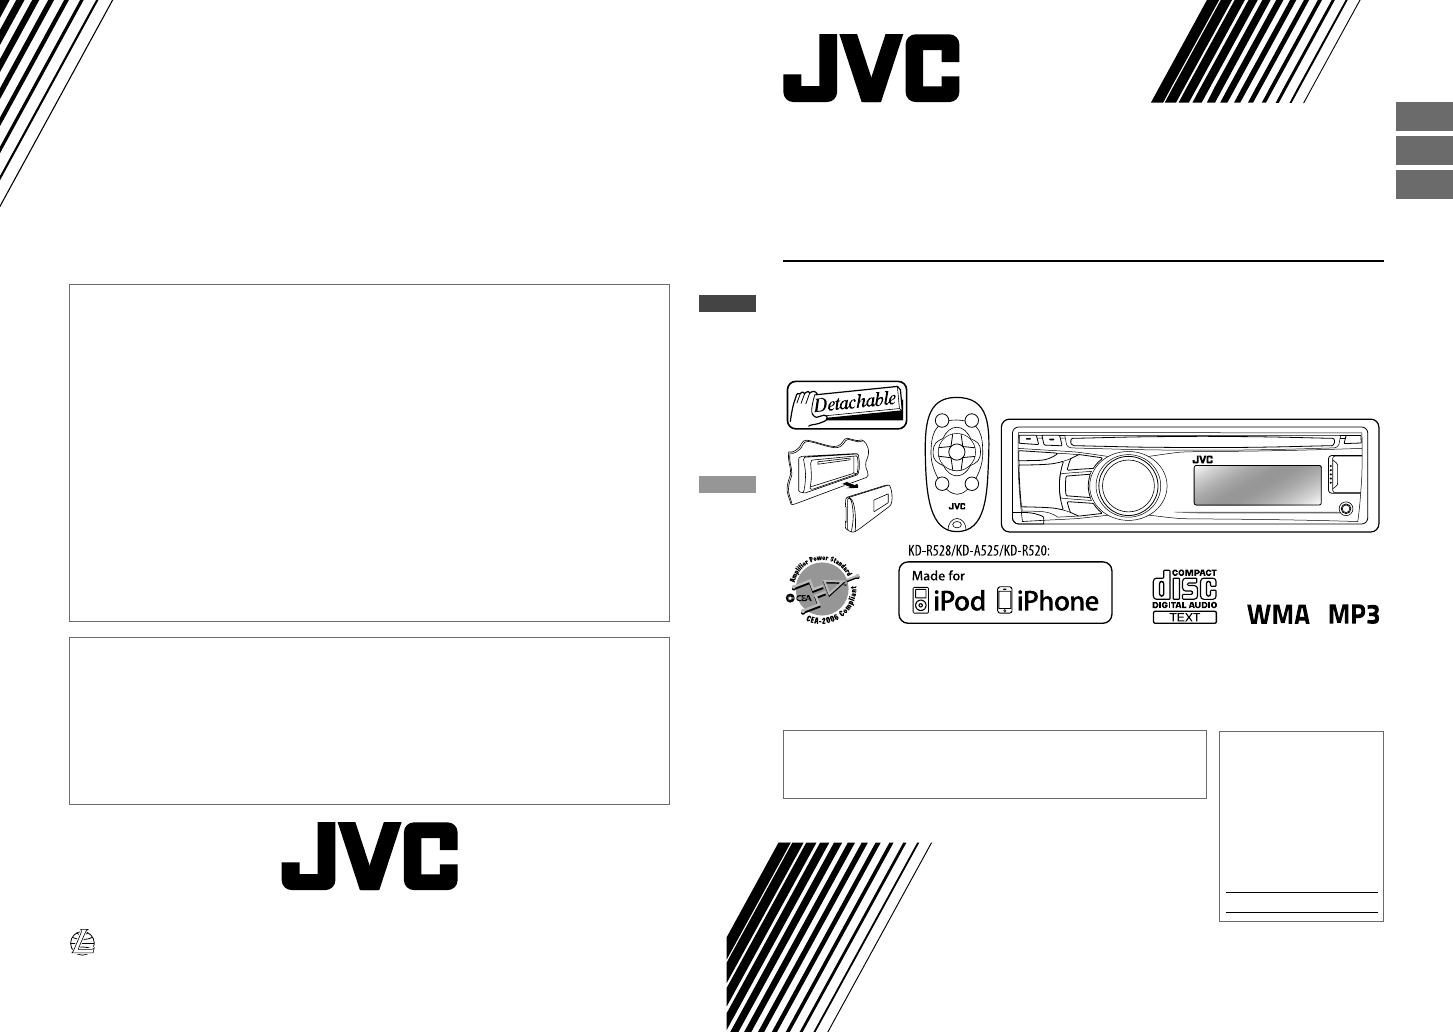 Jvc Car Stereo System Kd R528 User Guide